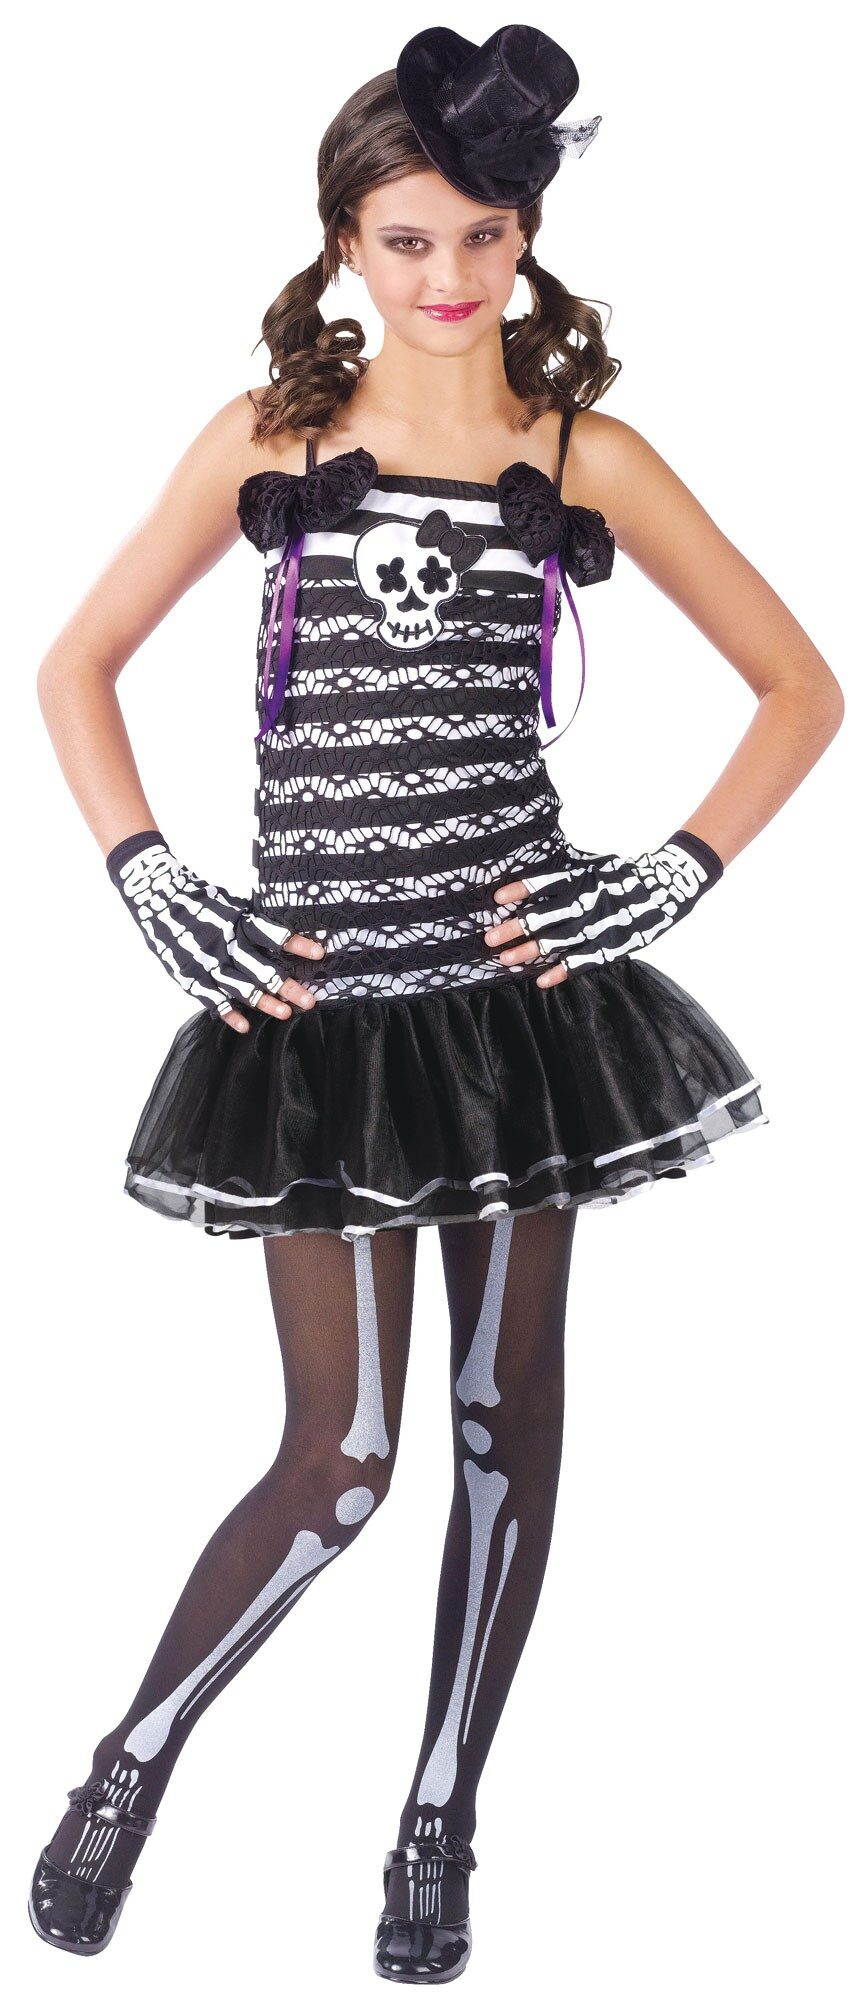 Baby and toddler skeleton costumes are complete straight out of the package, already accessorized with hoods, masks, or shoe covers; kids costumes are also nearly complete, but may require the purchase of shoes or wigs to match the look in the photo shown.